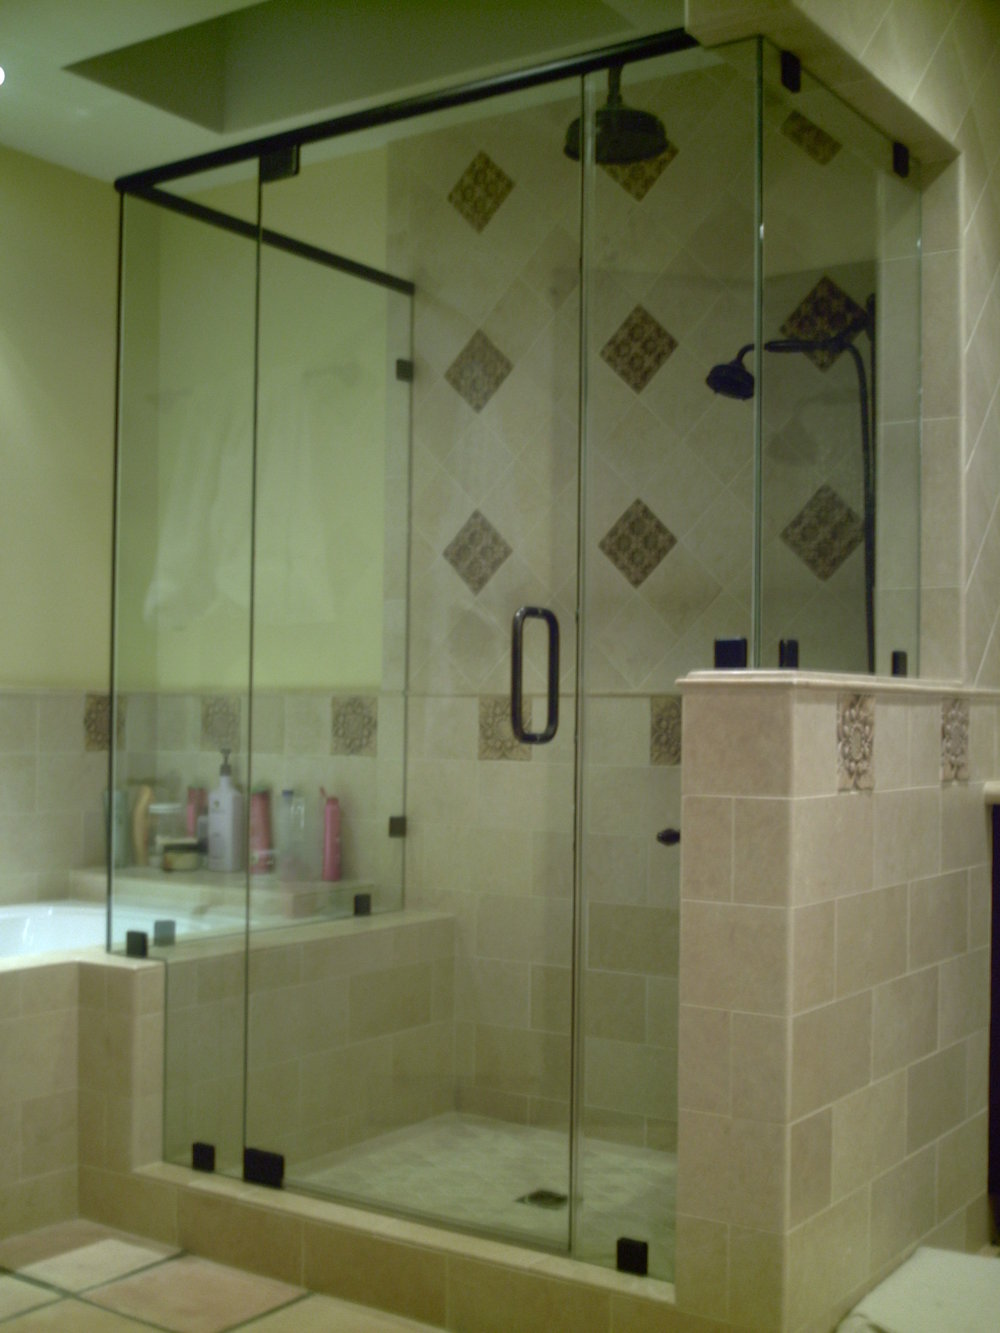 Shower-Doors-Residential-Photos-12.jpg